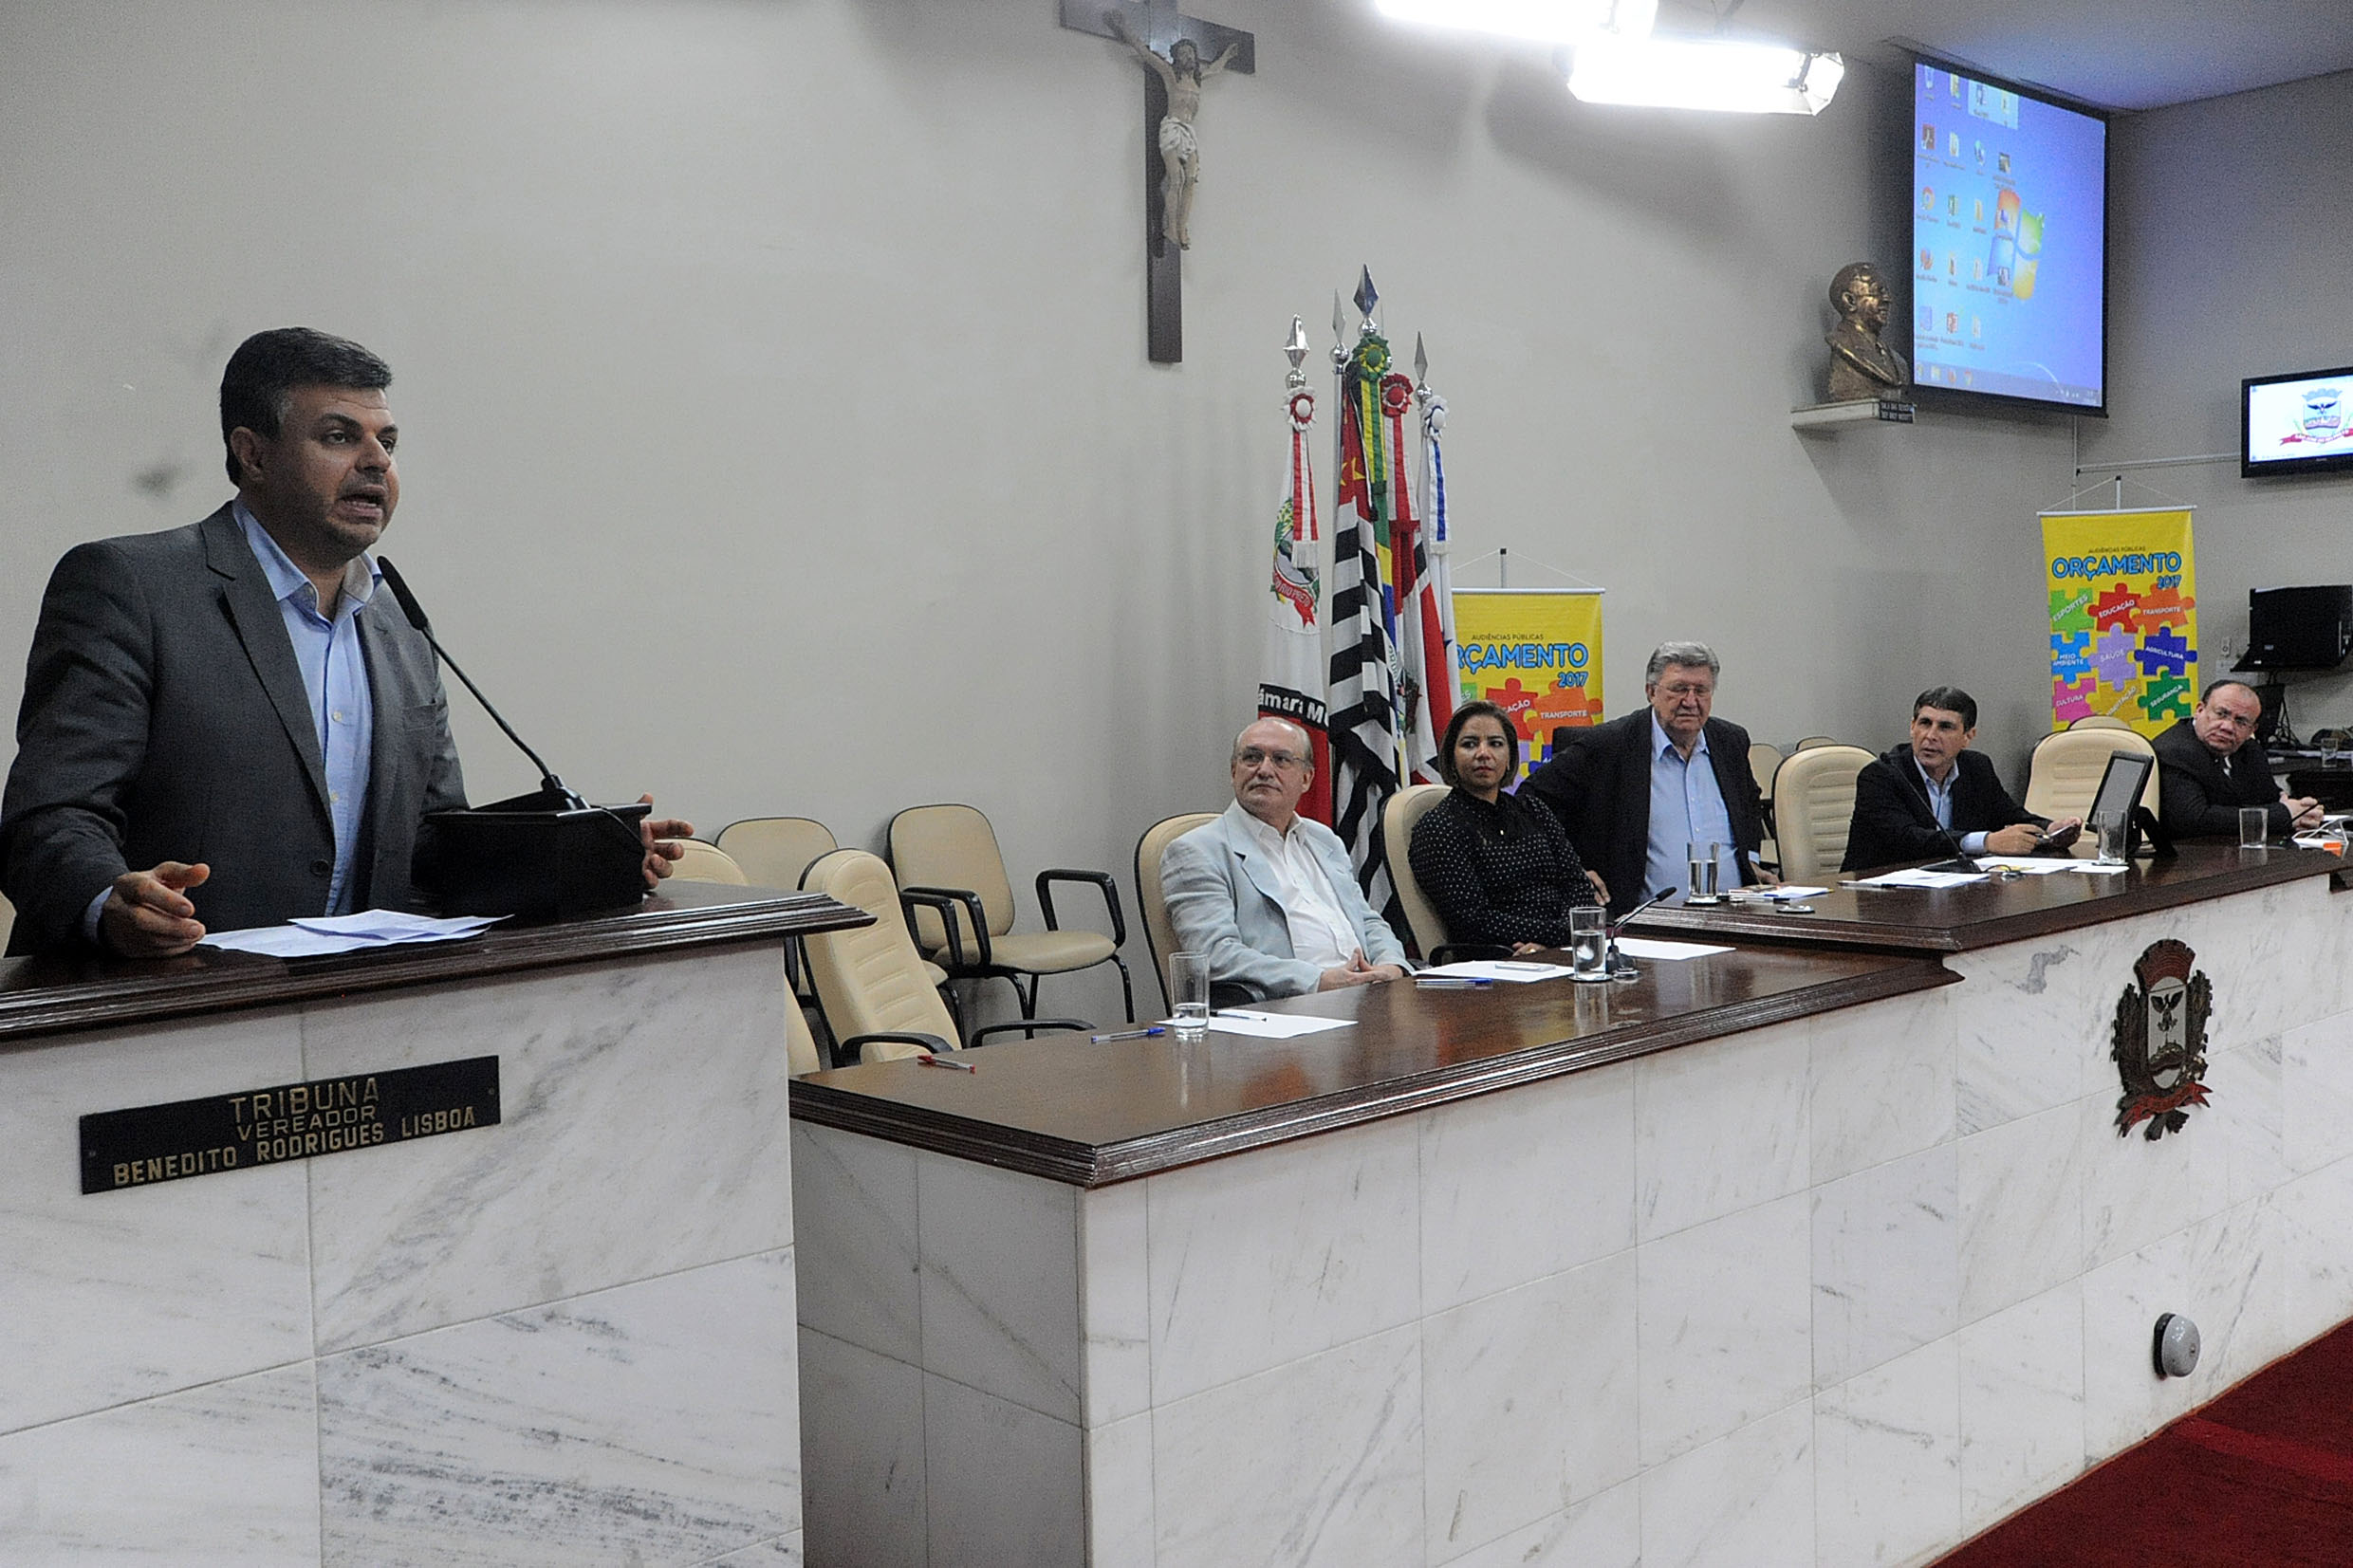 João Paulo Rillo <a style='float:right' href='https://www3.al.sp.gov.br/repositorio/noticia/N-06-2016/fg191975.jpg' target=_blank><img src='/_img/material-file-download-white.png' width='14px' alt='Clique para baixar a imagem'></a>